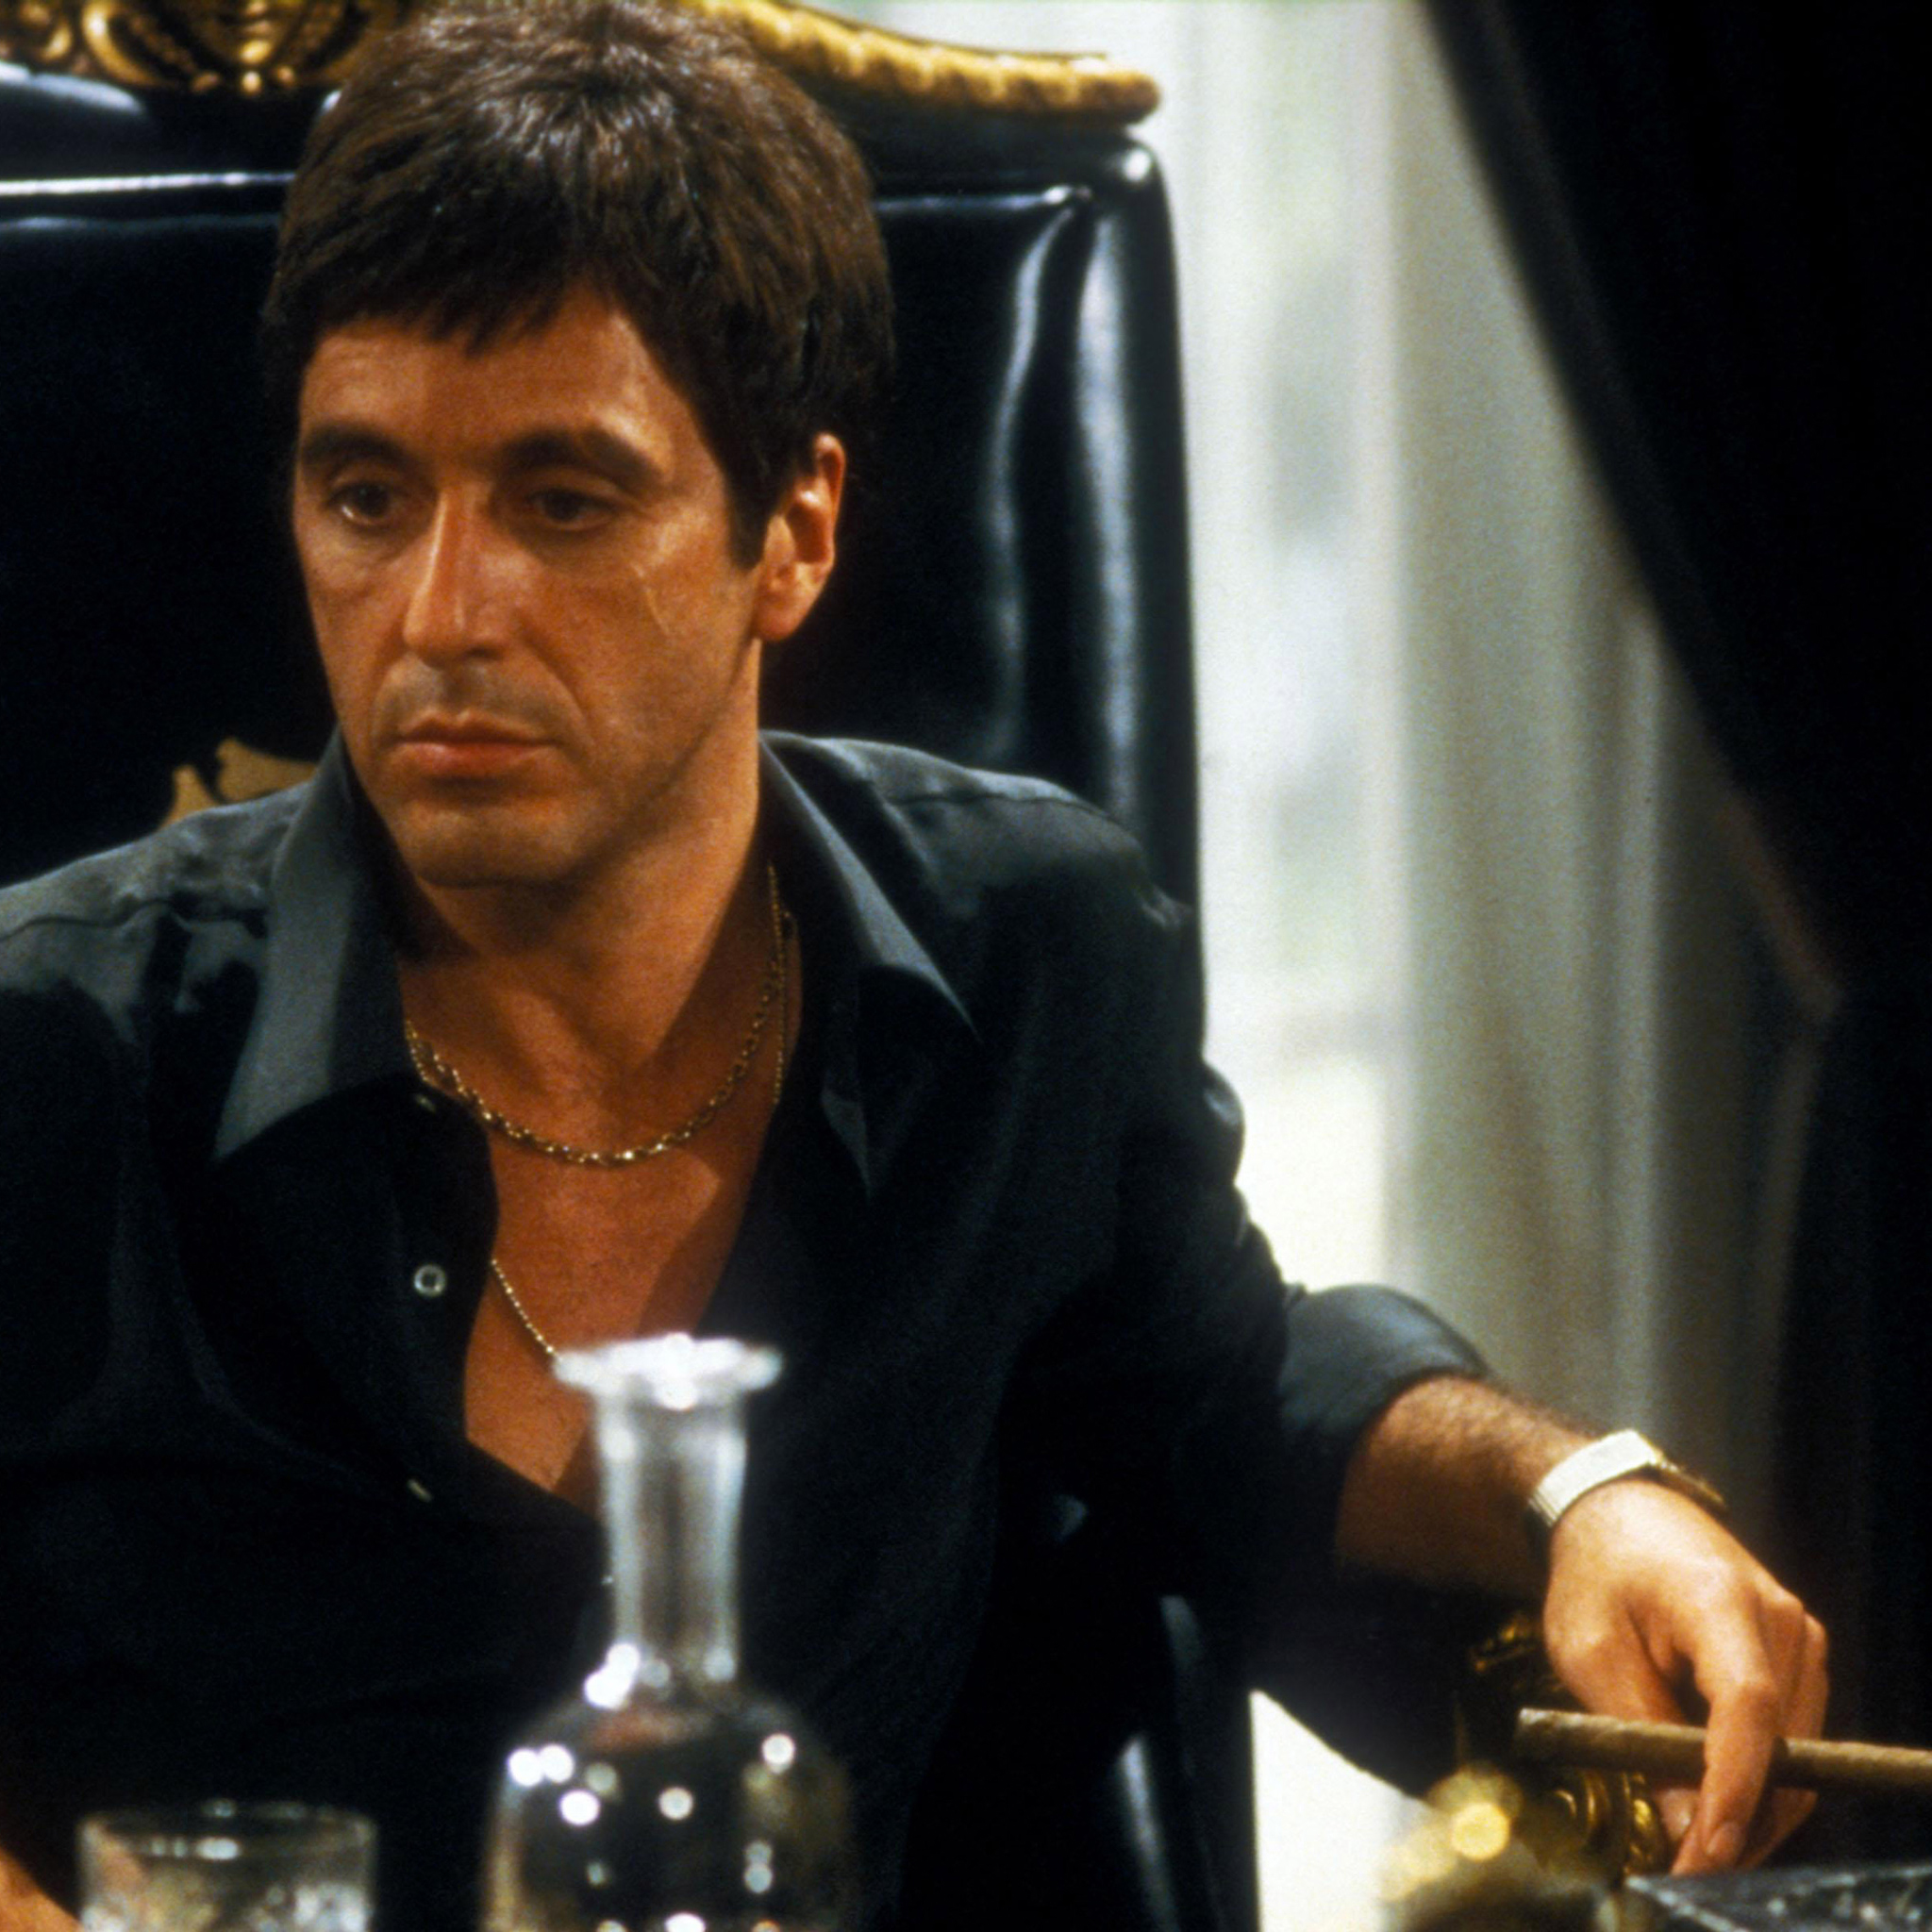 Scarface Wallpaper For Bedroom Scarface Palm Tree Wallpaper Wallpapersafari